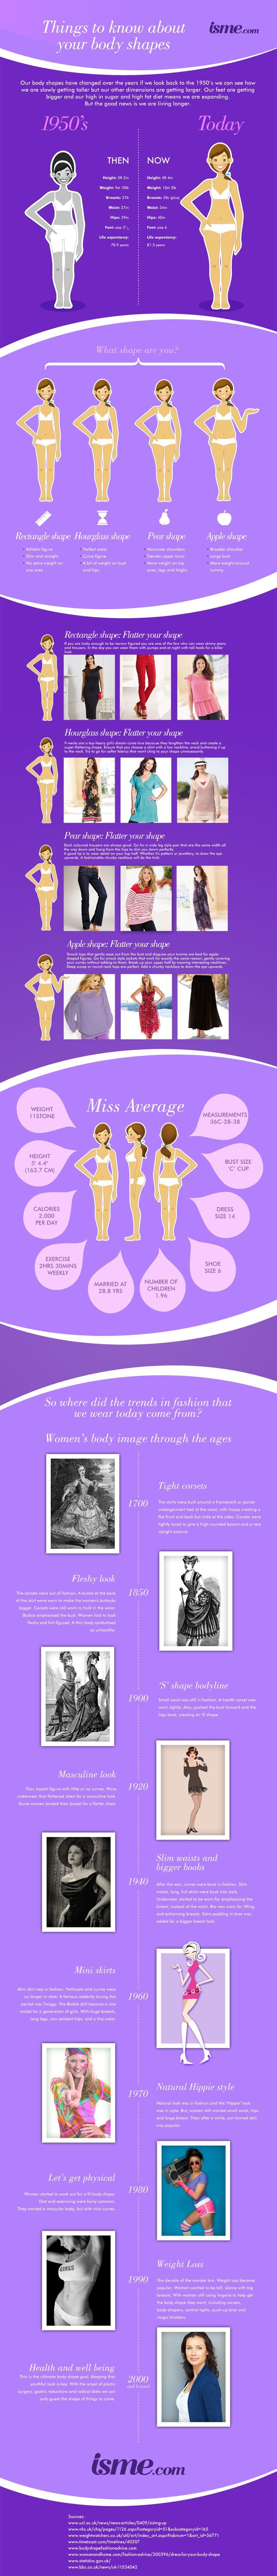 have look at this interesting body shape infographic to find our Miss averages weight and shoes size and how it has changed over the last 50 years